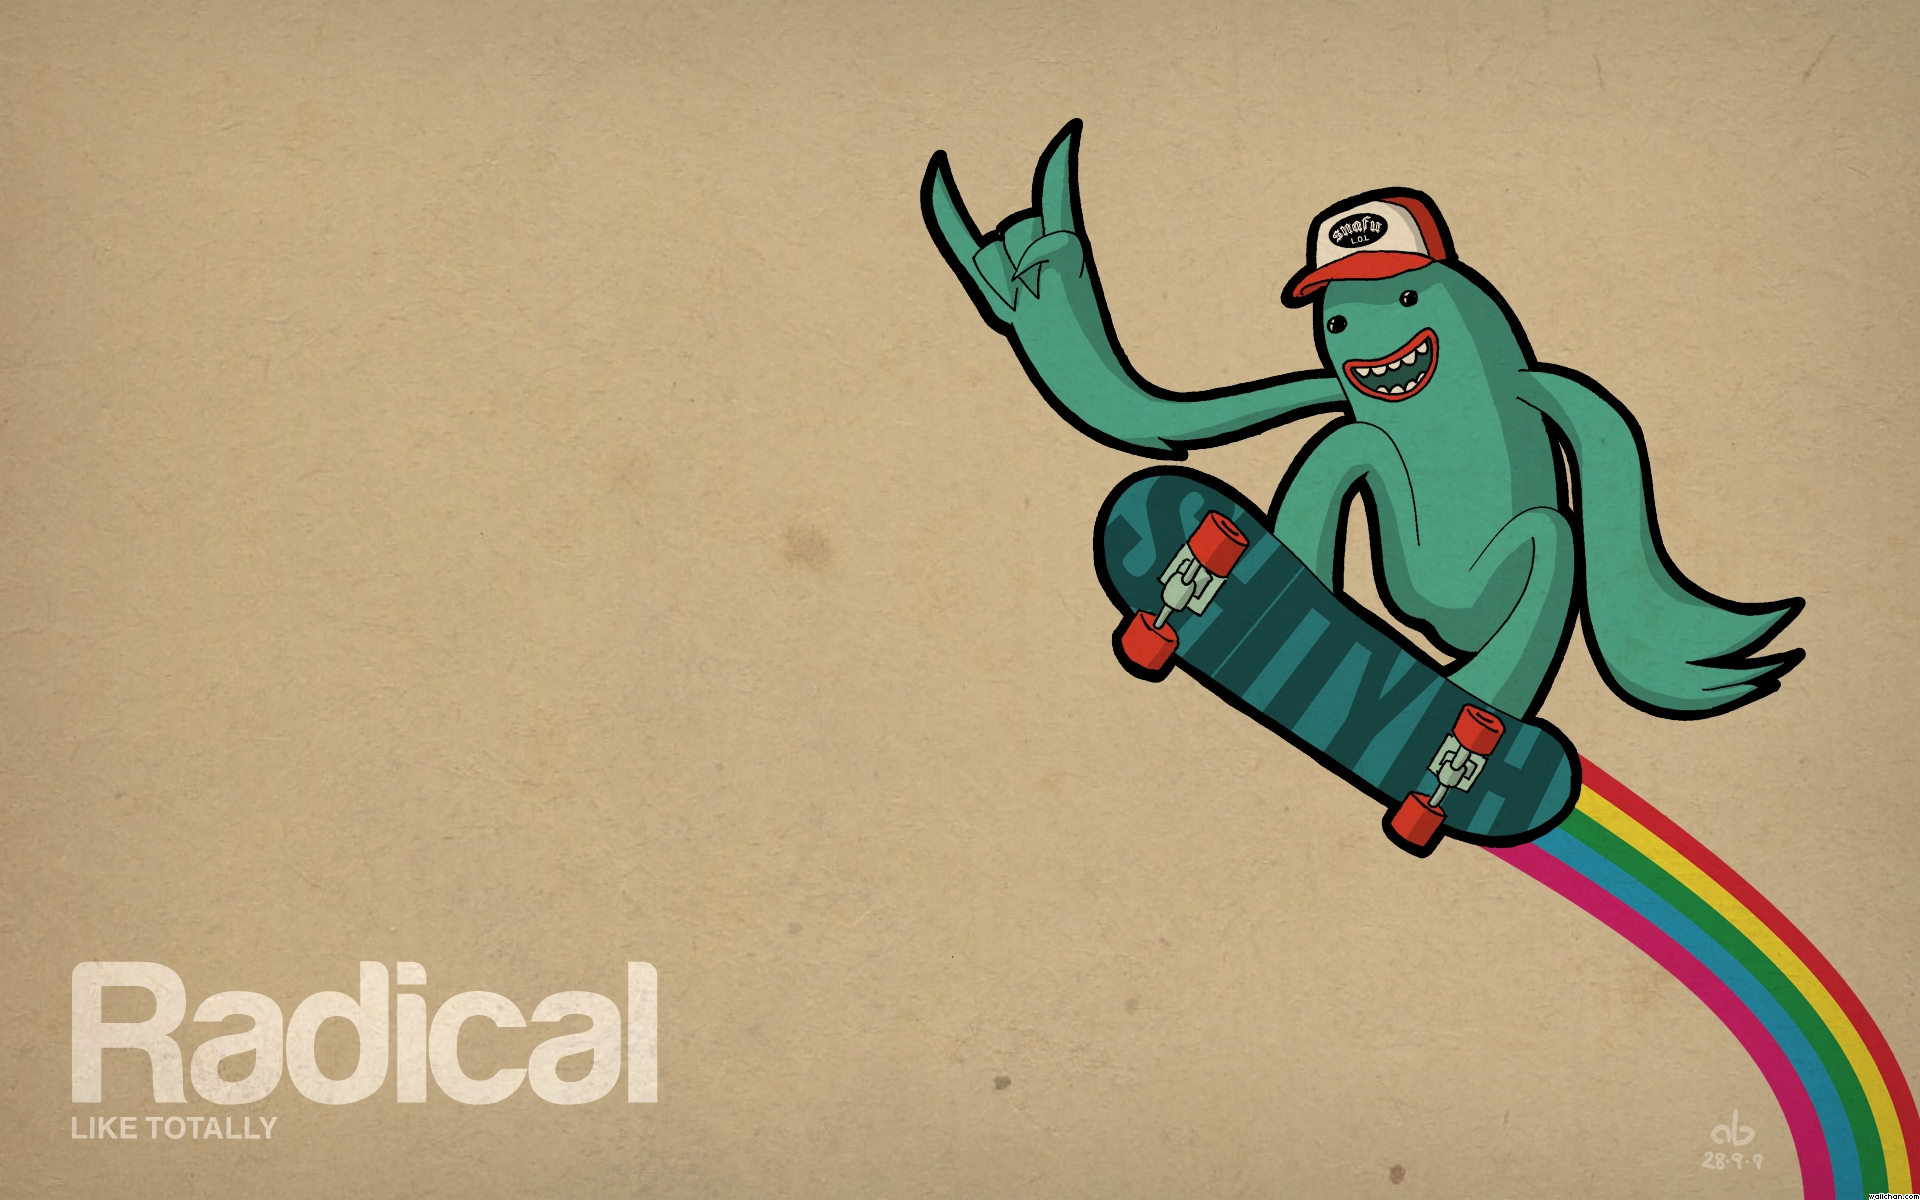 Funny Radical Skateboard